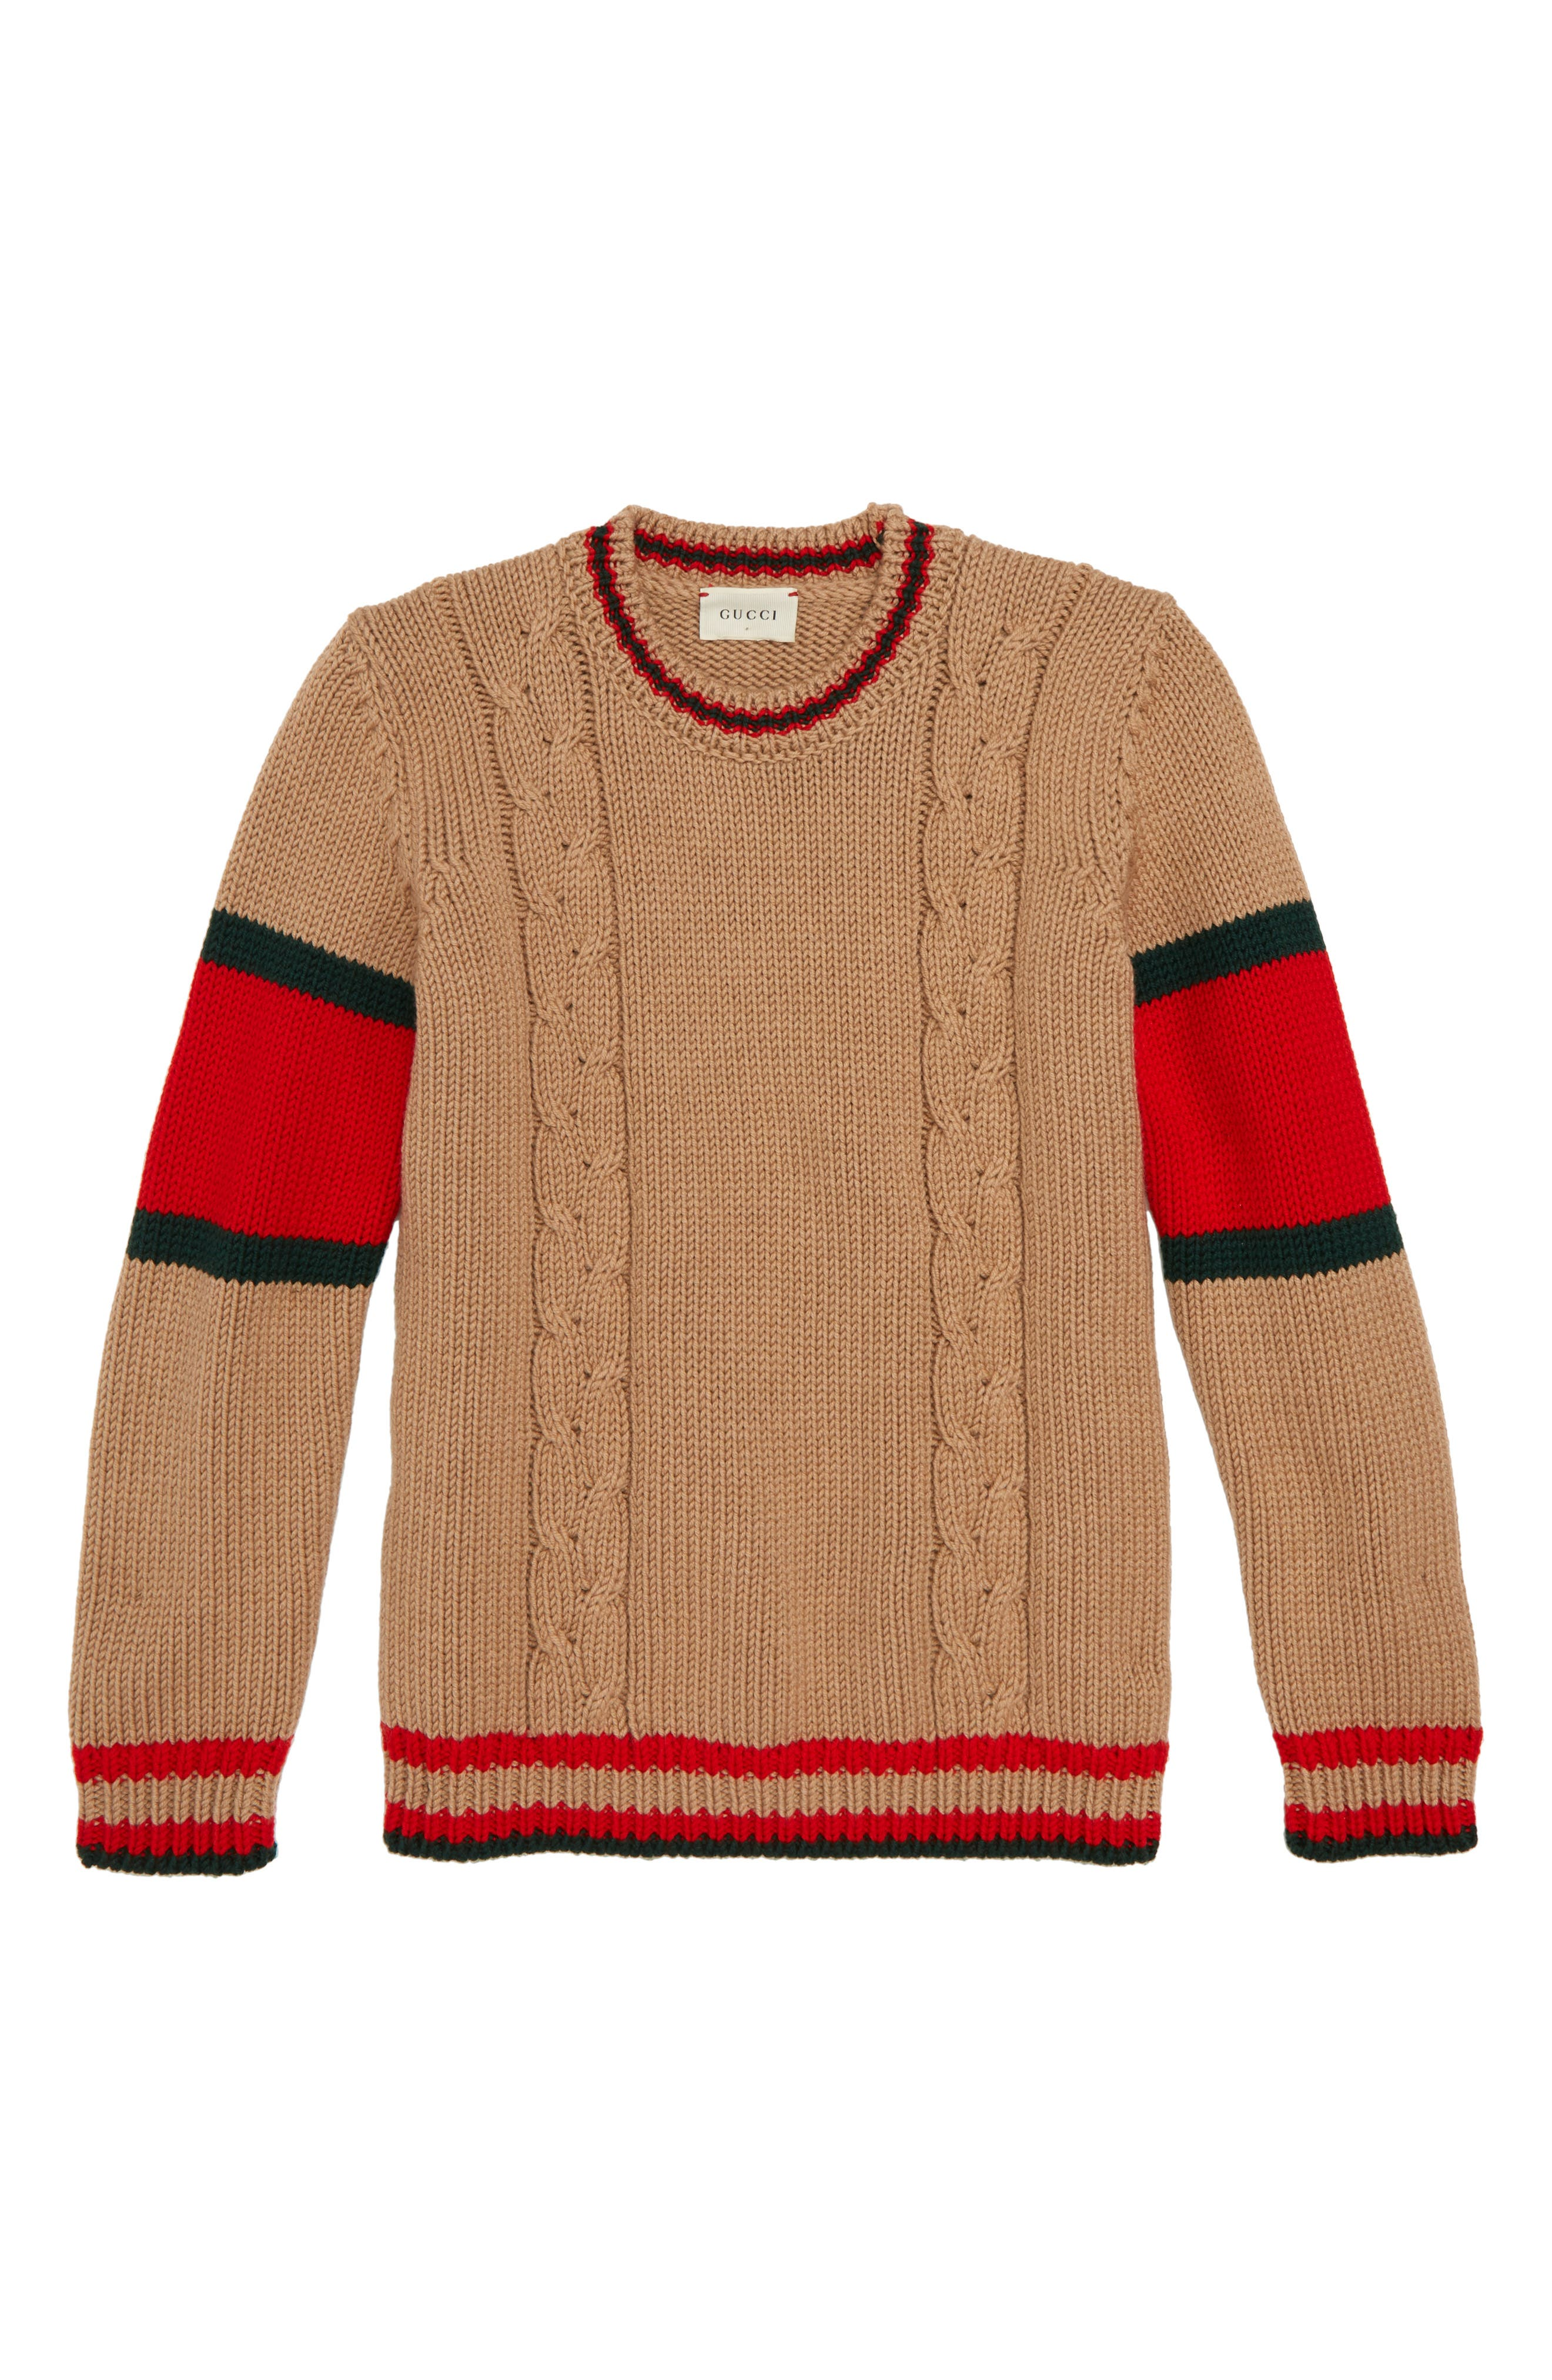 Crewneck Wool Sweater,                         Main,                         color, CAMEL/ GREEN/ RED